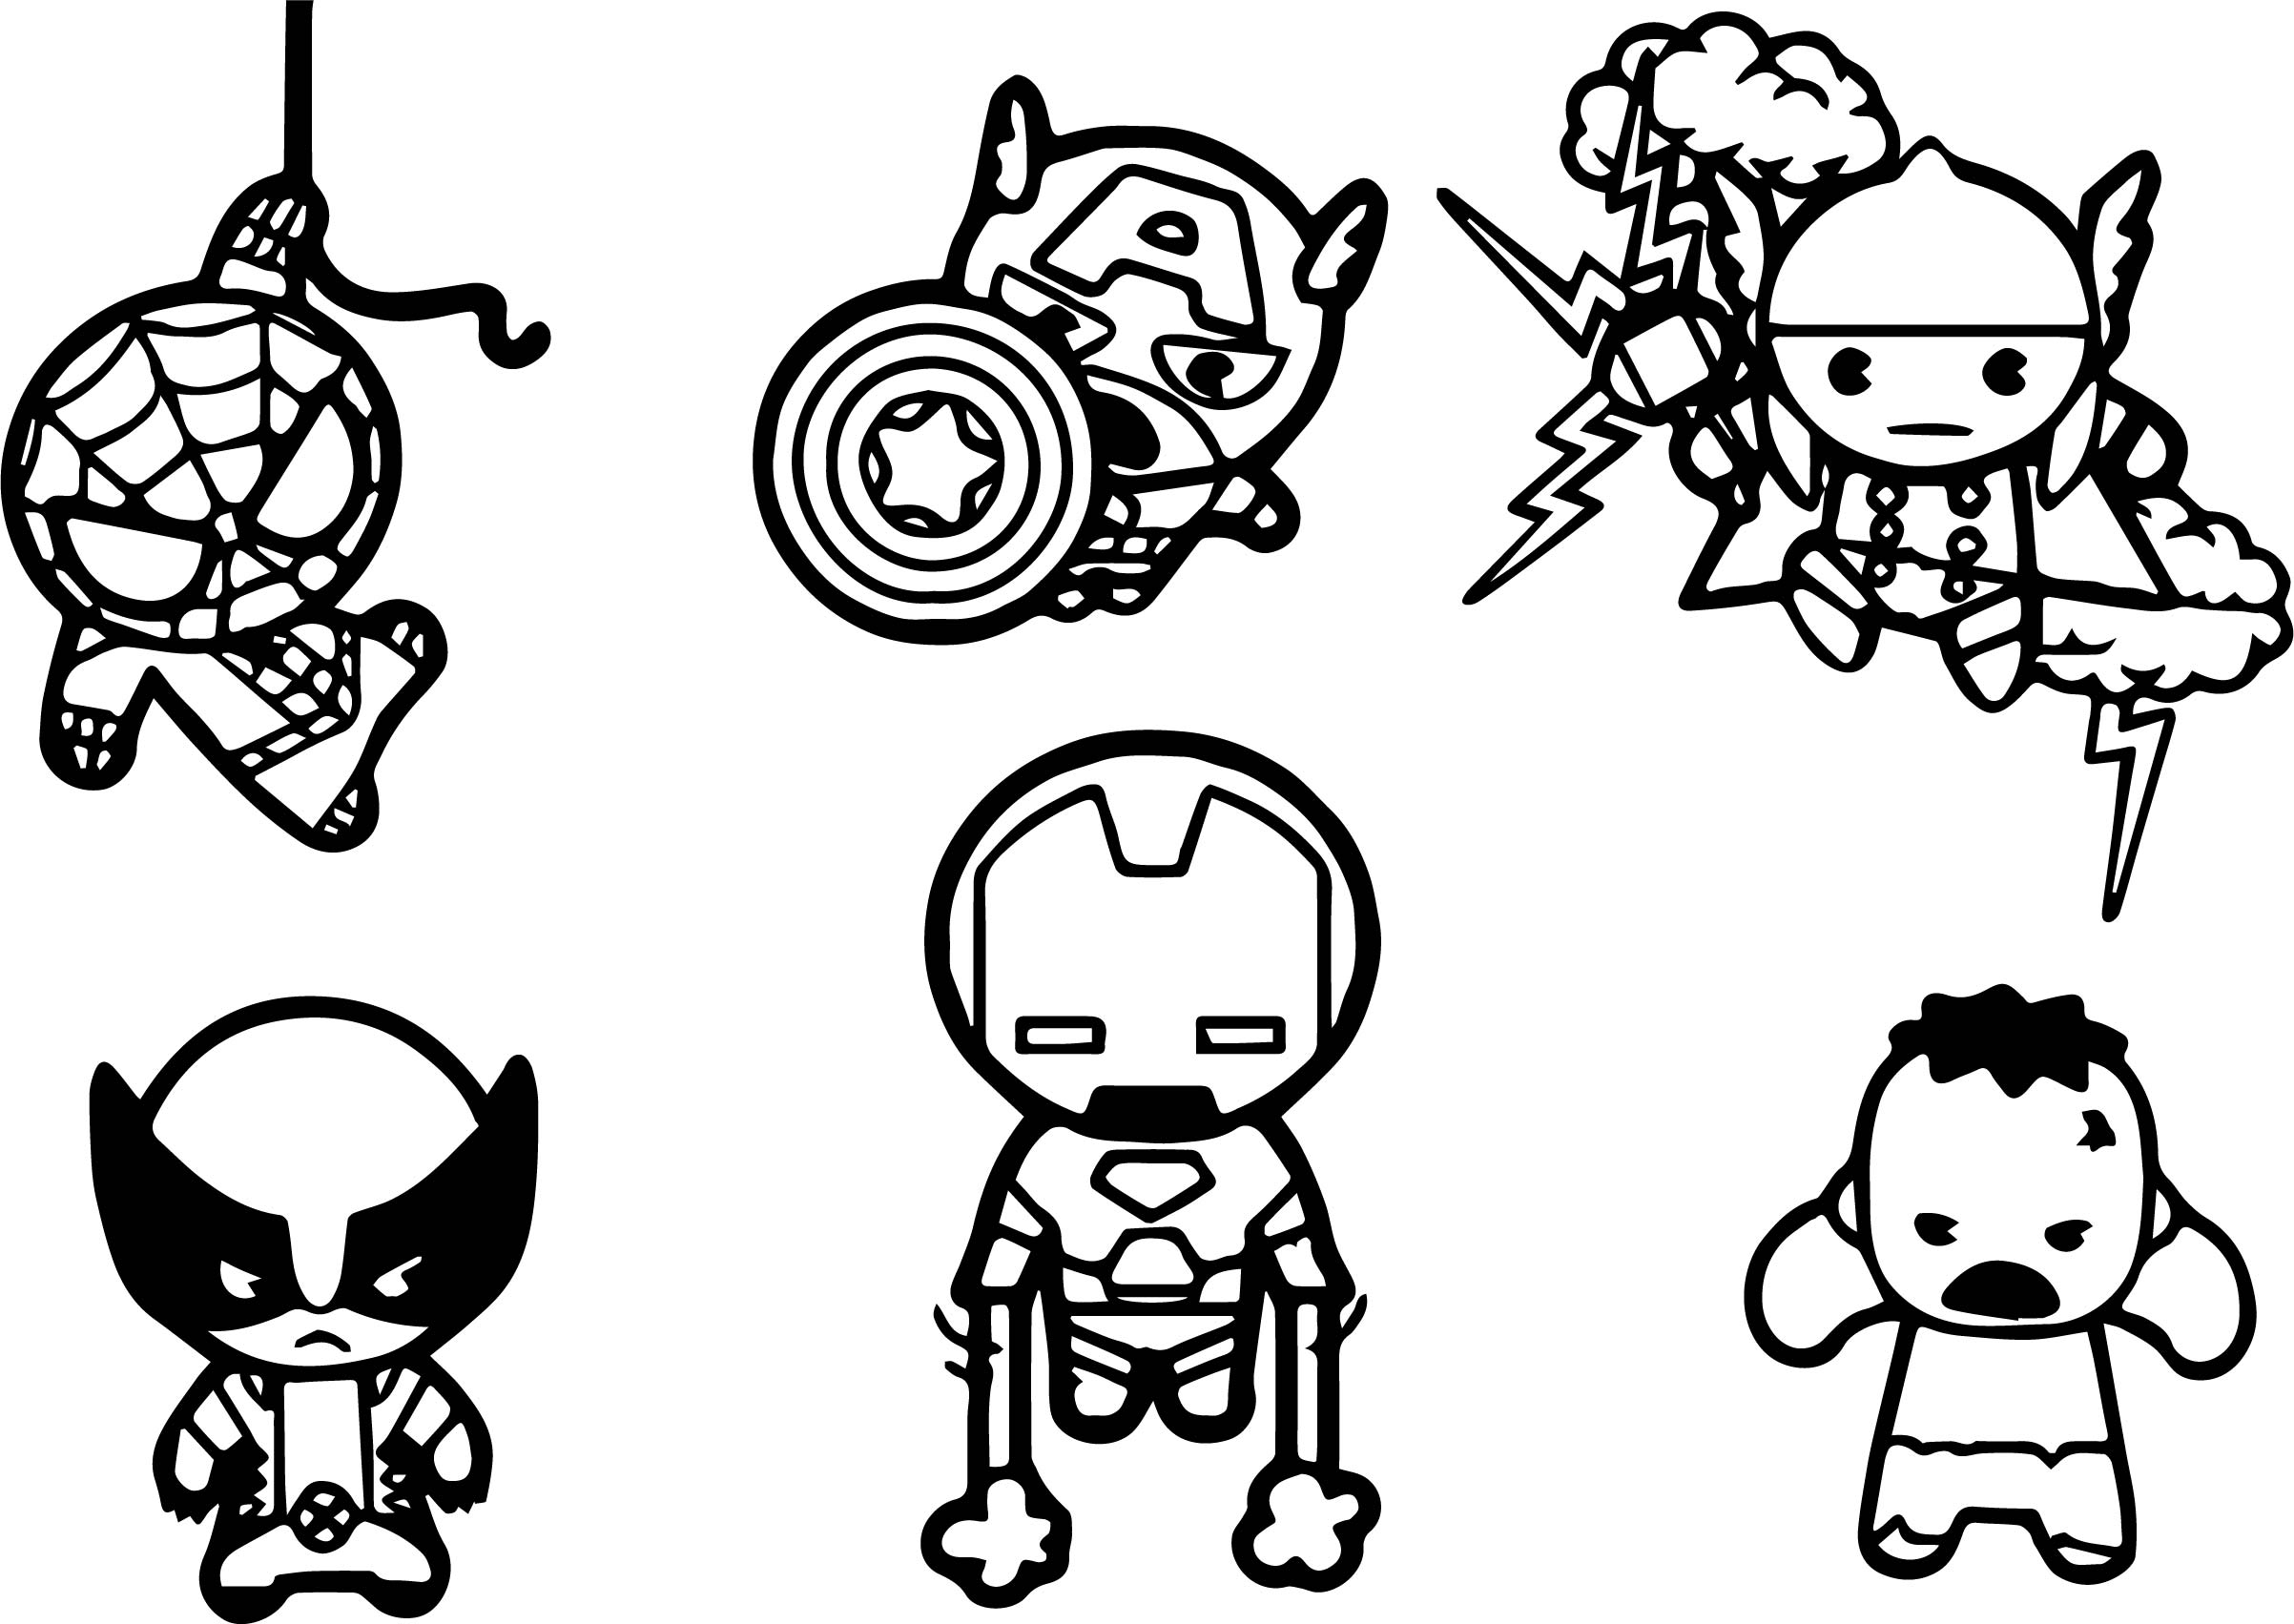 coloring picture avengers avengers coloring pages best coloring pages for kids avengers picture coloring